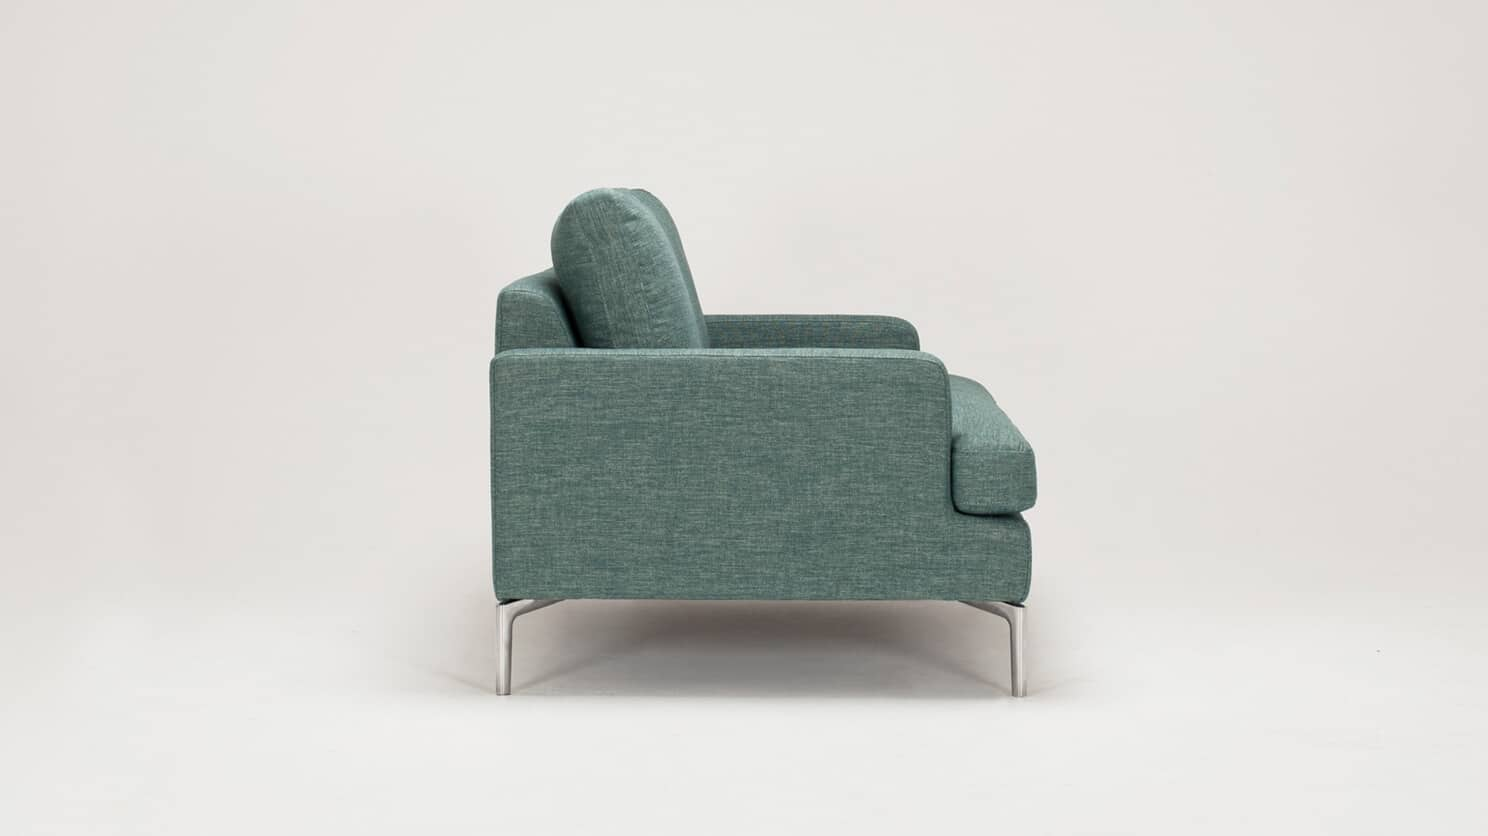 31127 03 04 loveseat eve key largo teal side view 1